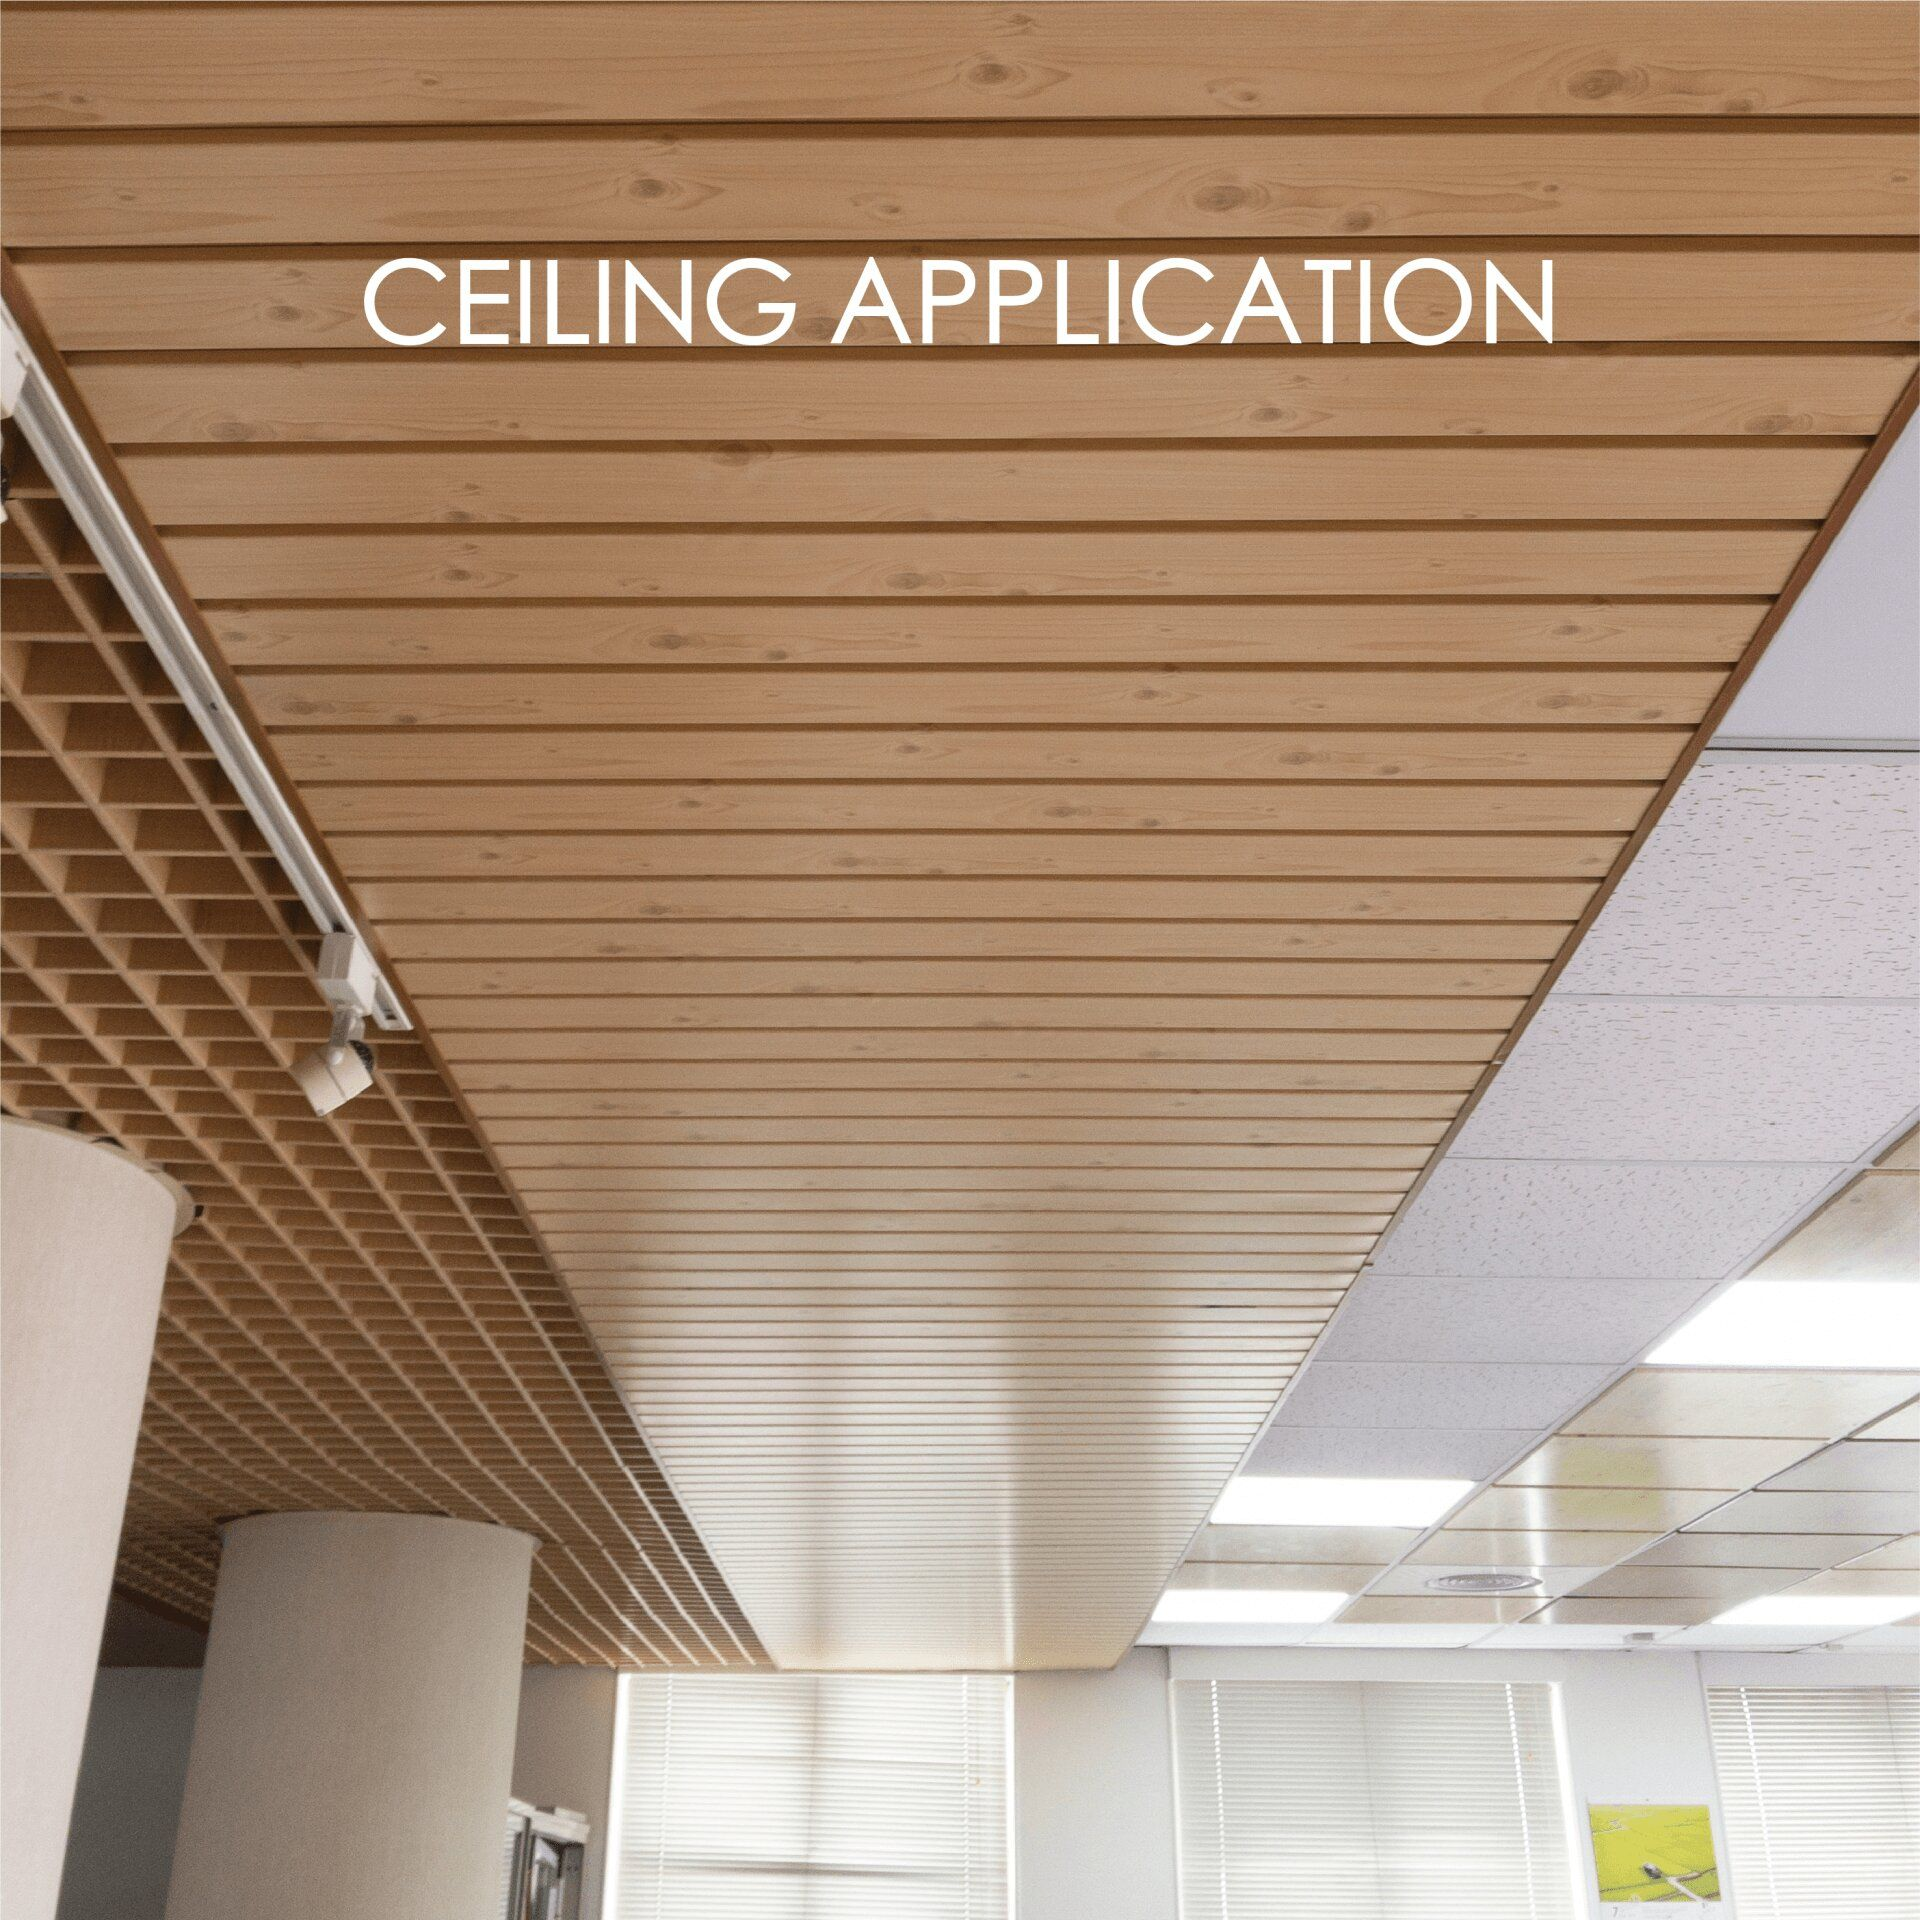 Using laminated metal to make ceilings adds decorative and durability